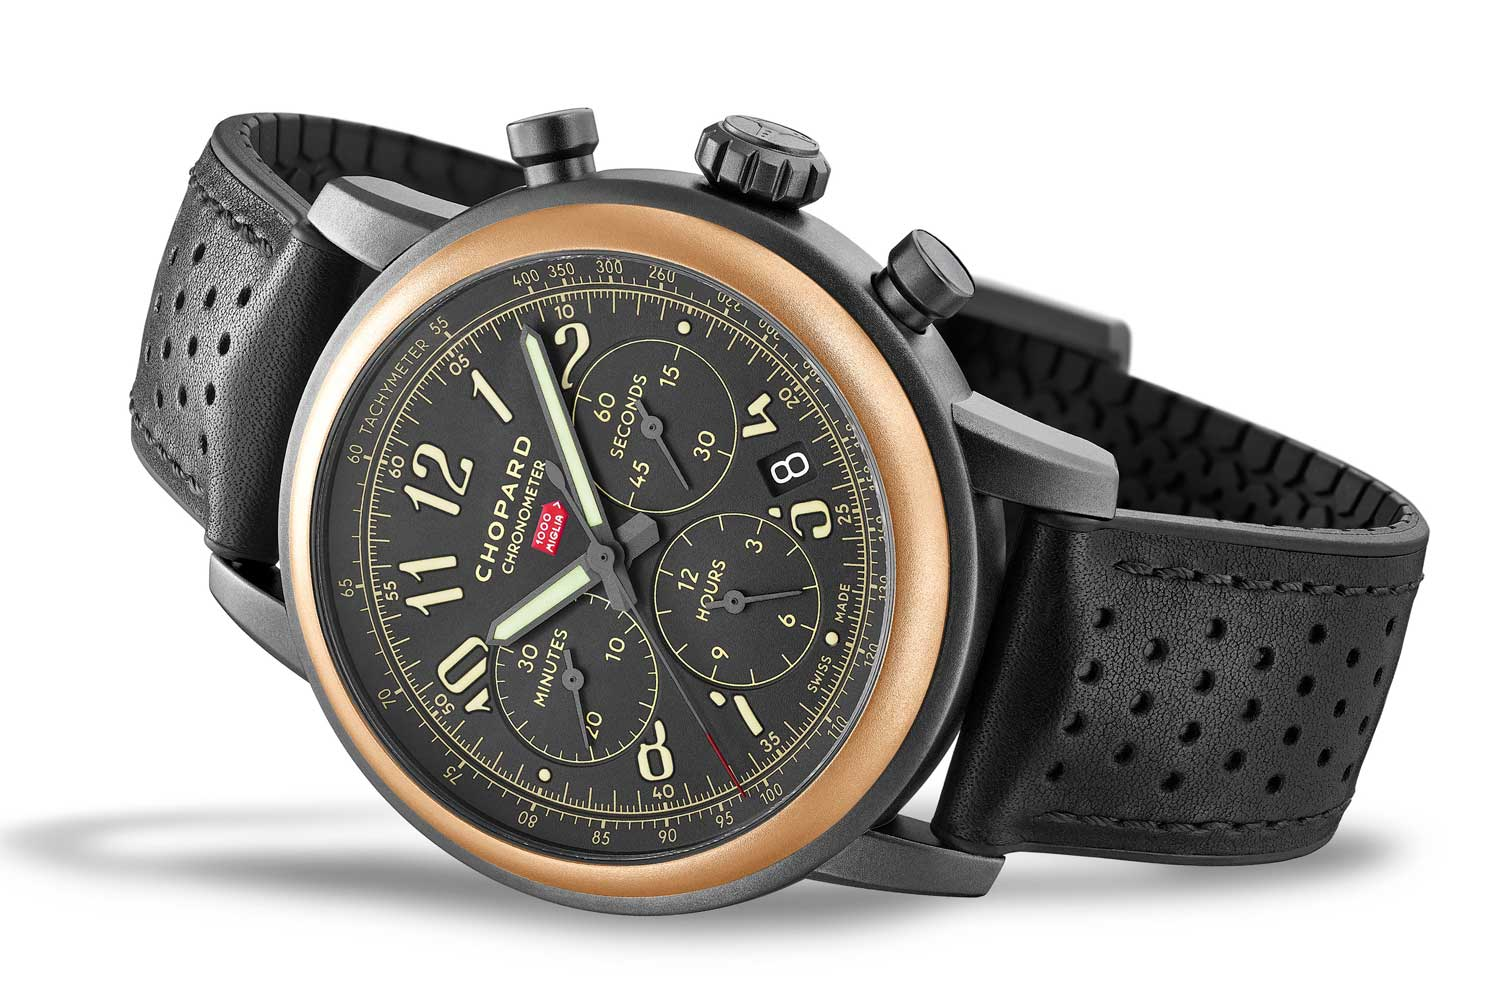 Mille Miglia 2020 Race Edition with18k ethical rose gold bezel